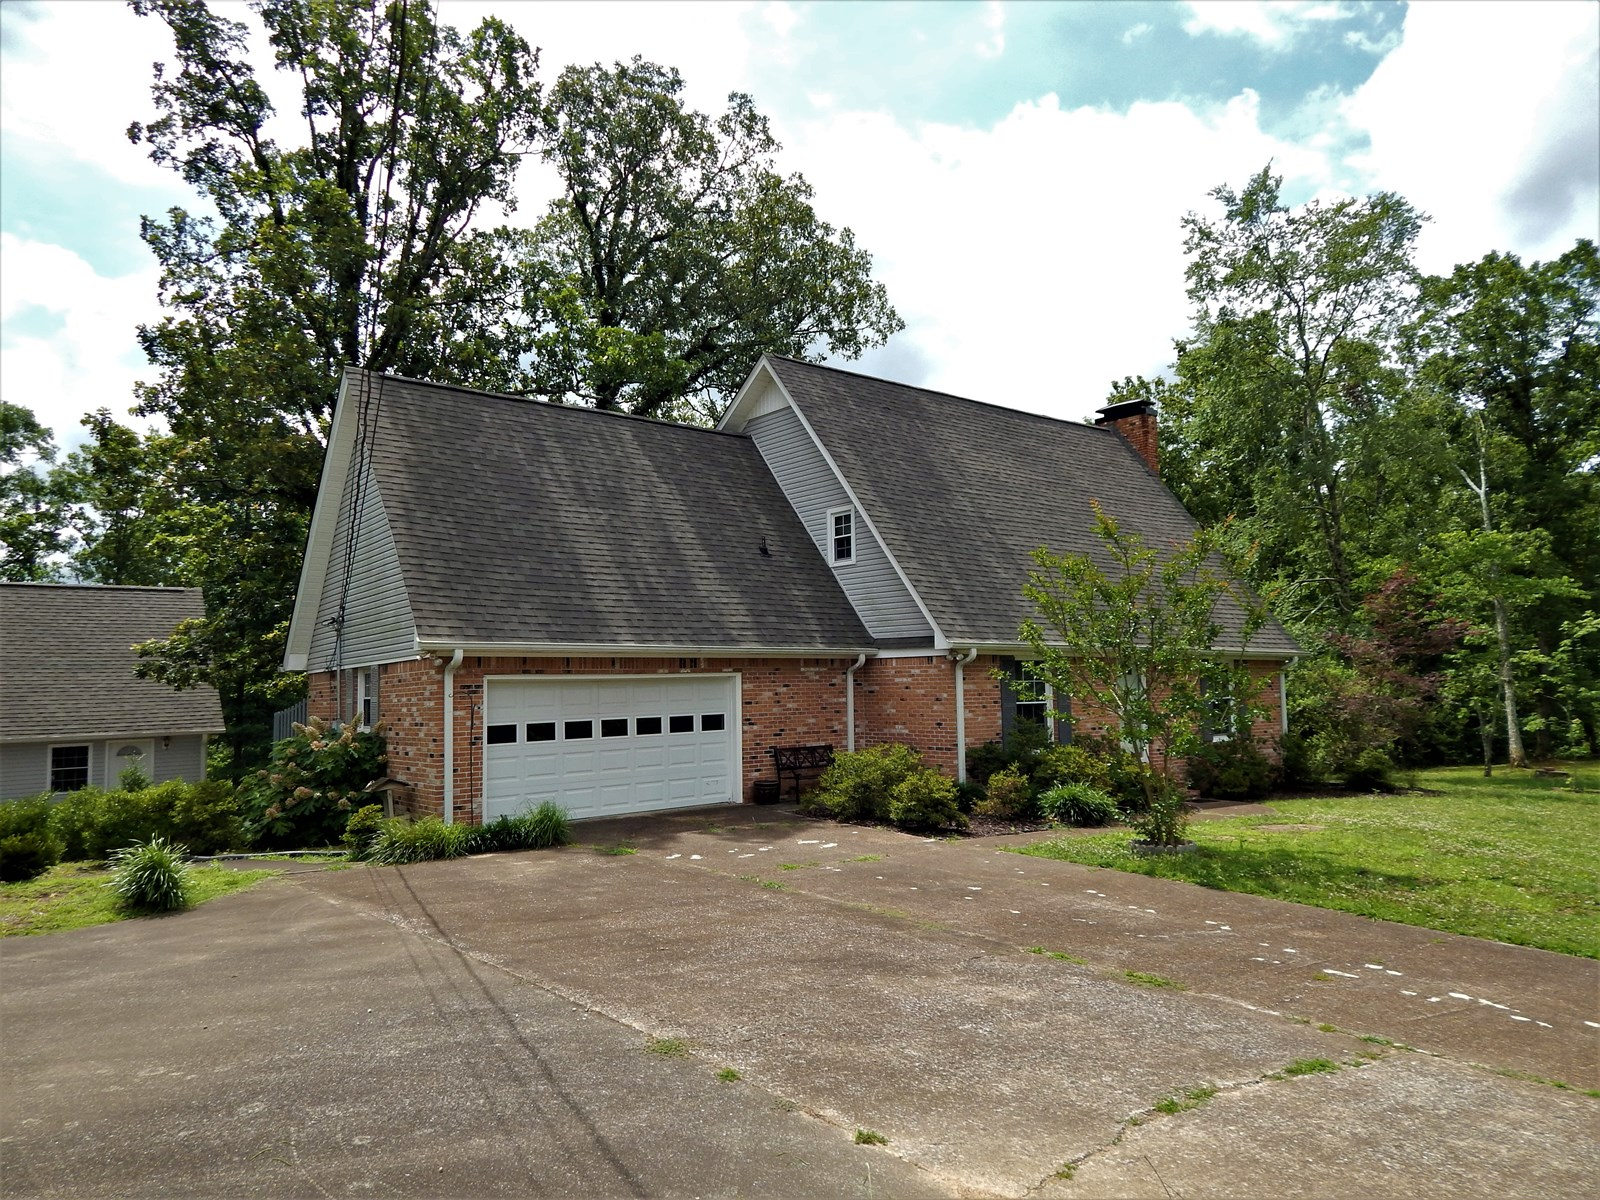 Cape Cod Home for Sale on 3.14 Acres!